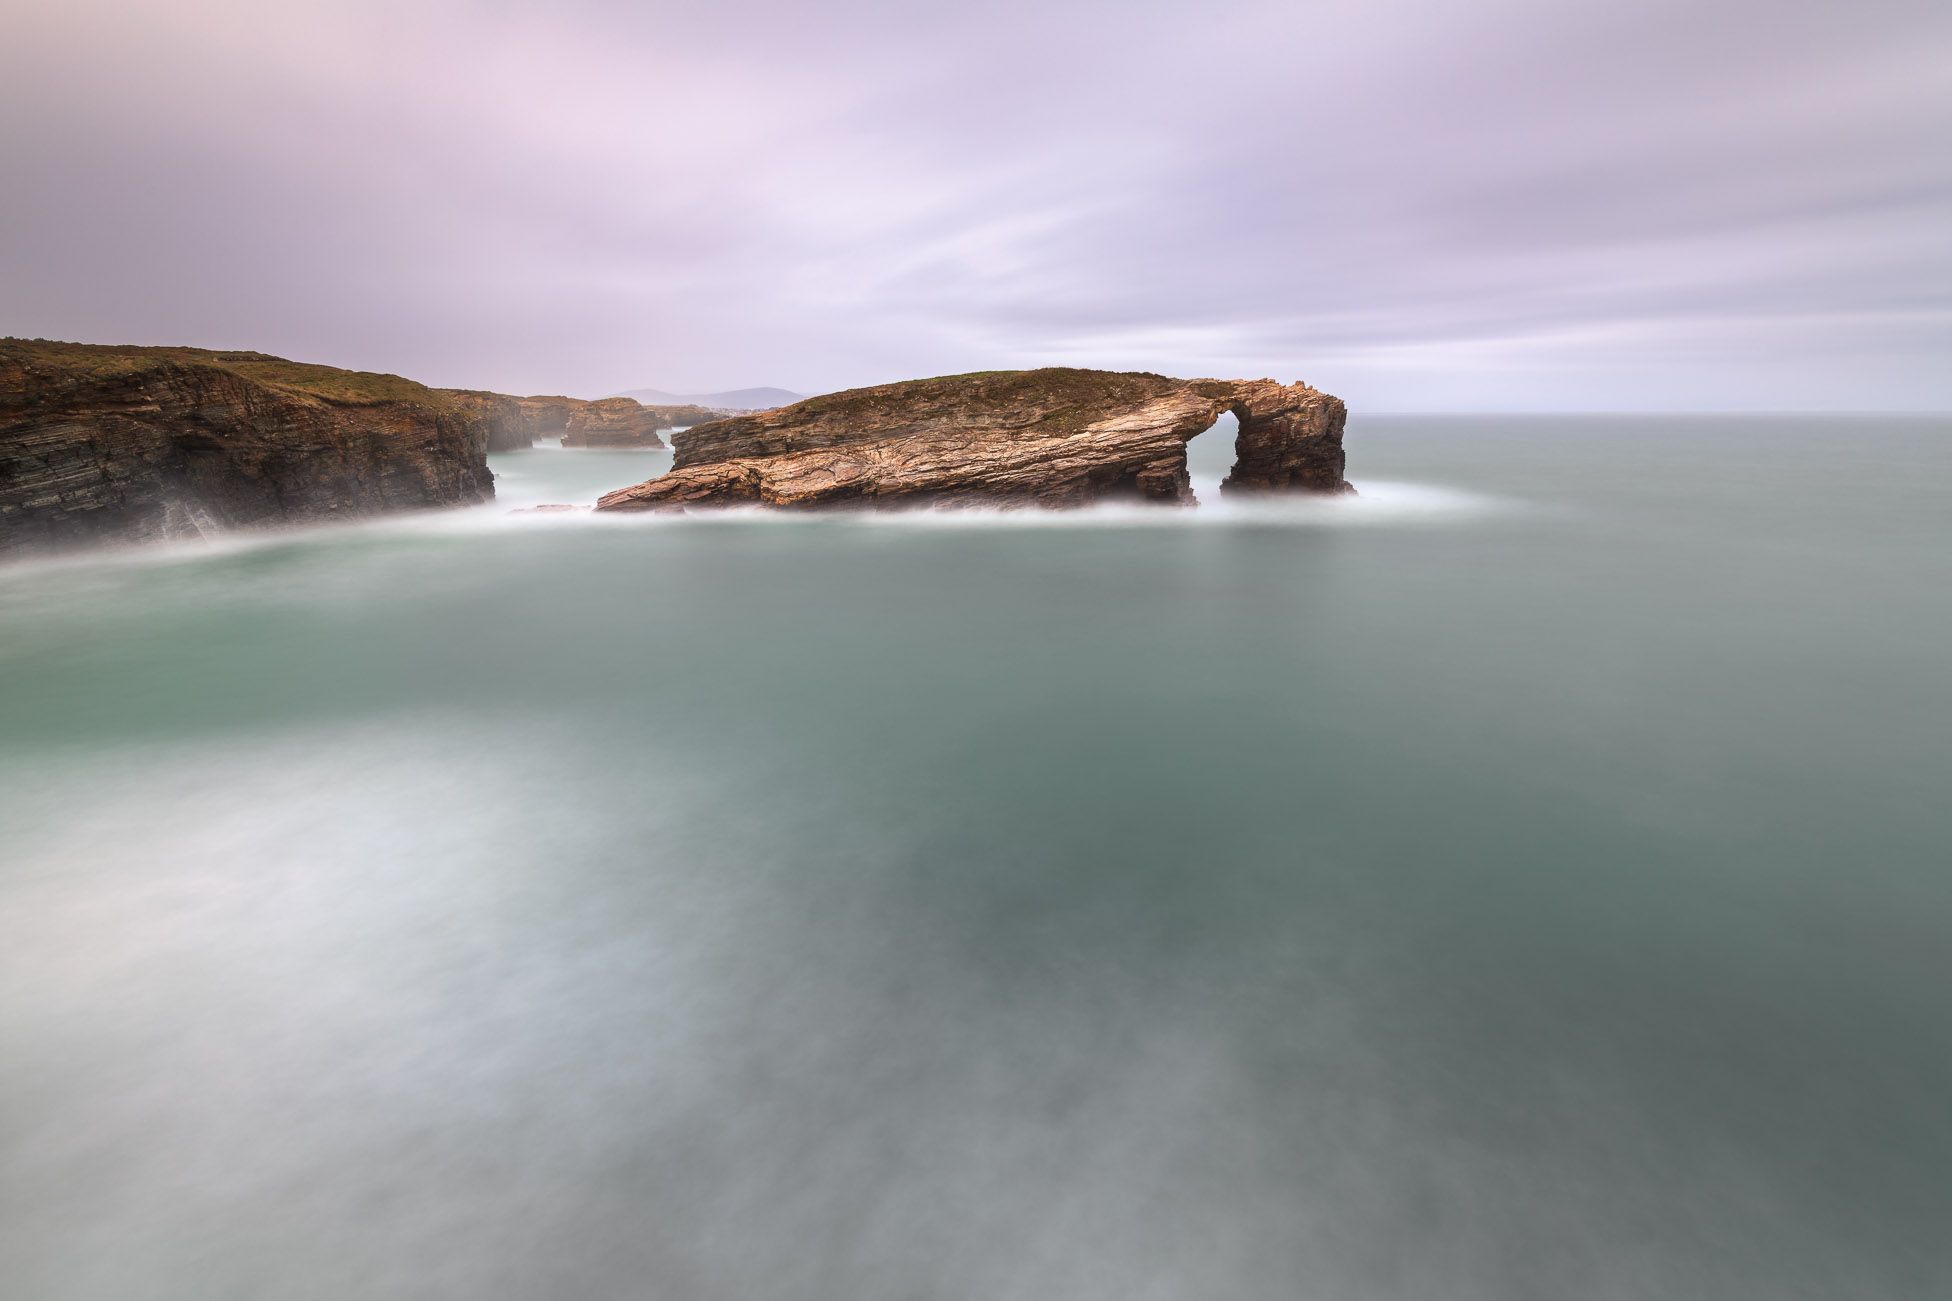 The Gate of the Winds, Praia das Catedrais in the Evening, Galicia, Spain